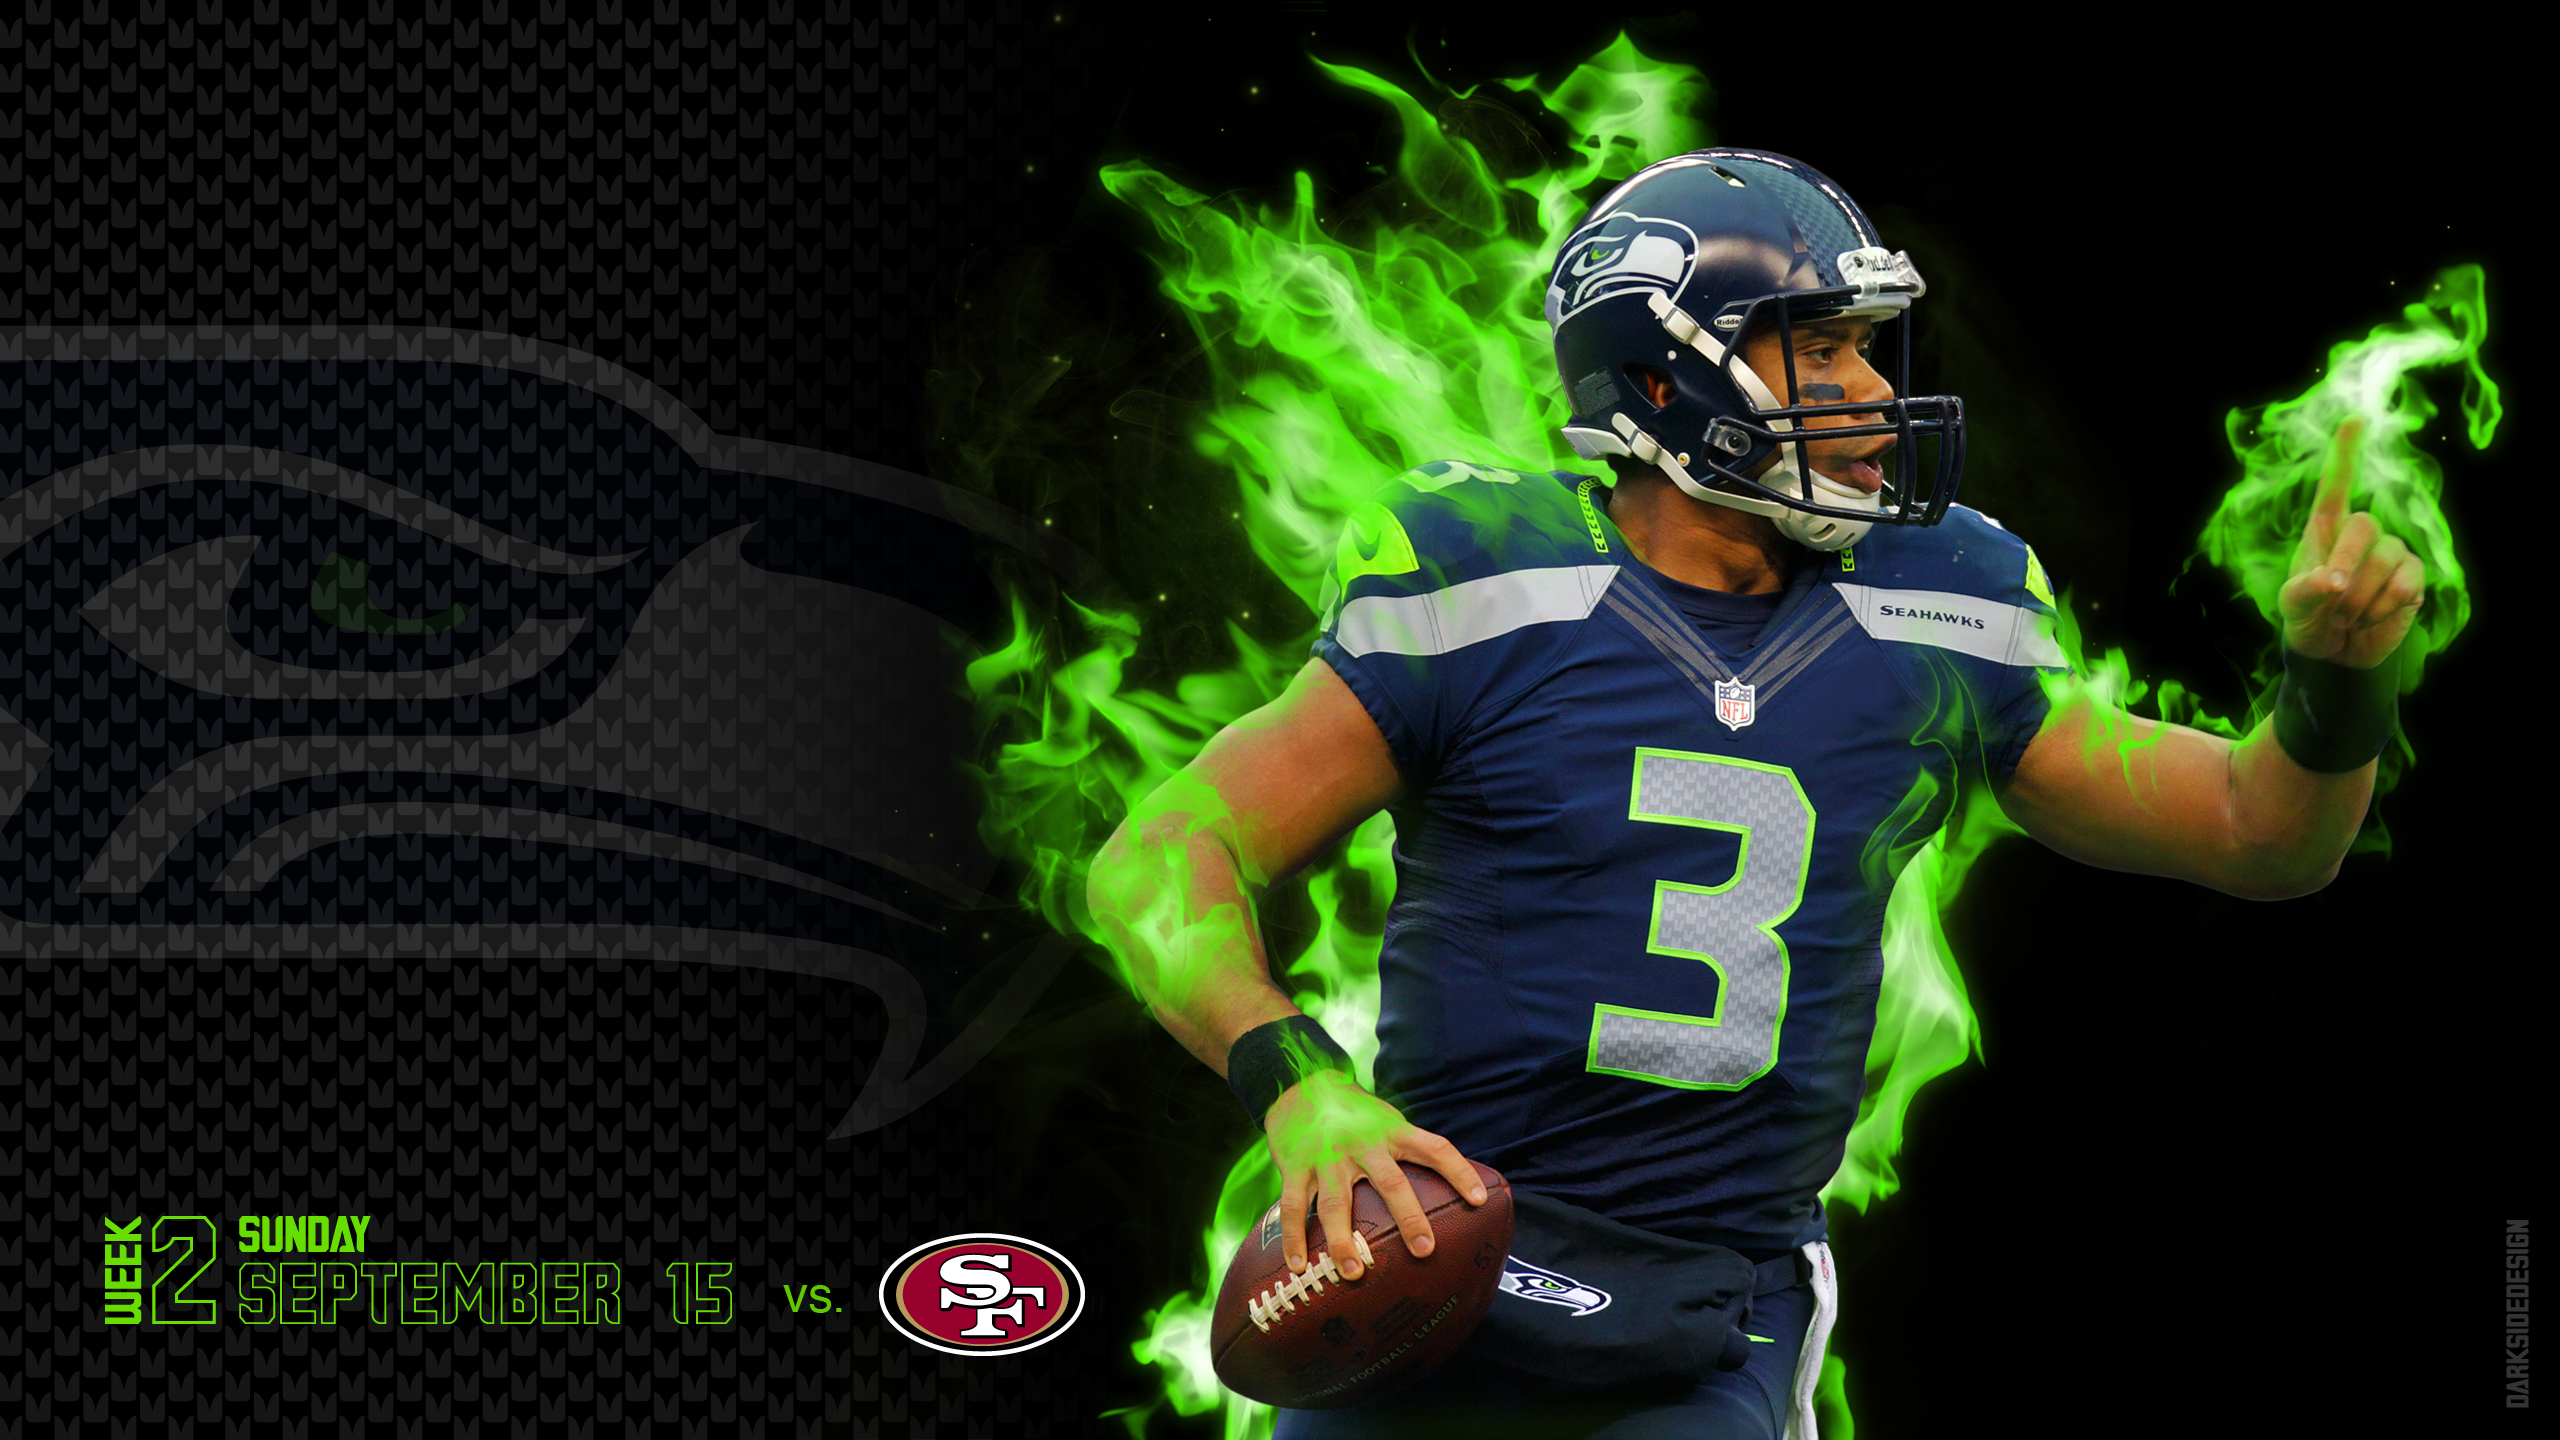 Seahawks Wallpaper 187 Images HD